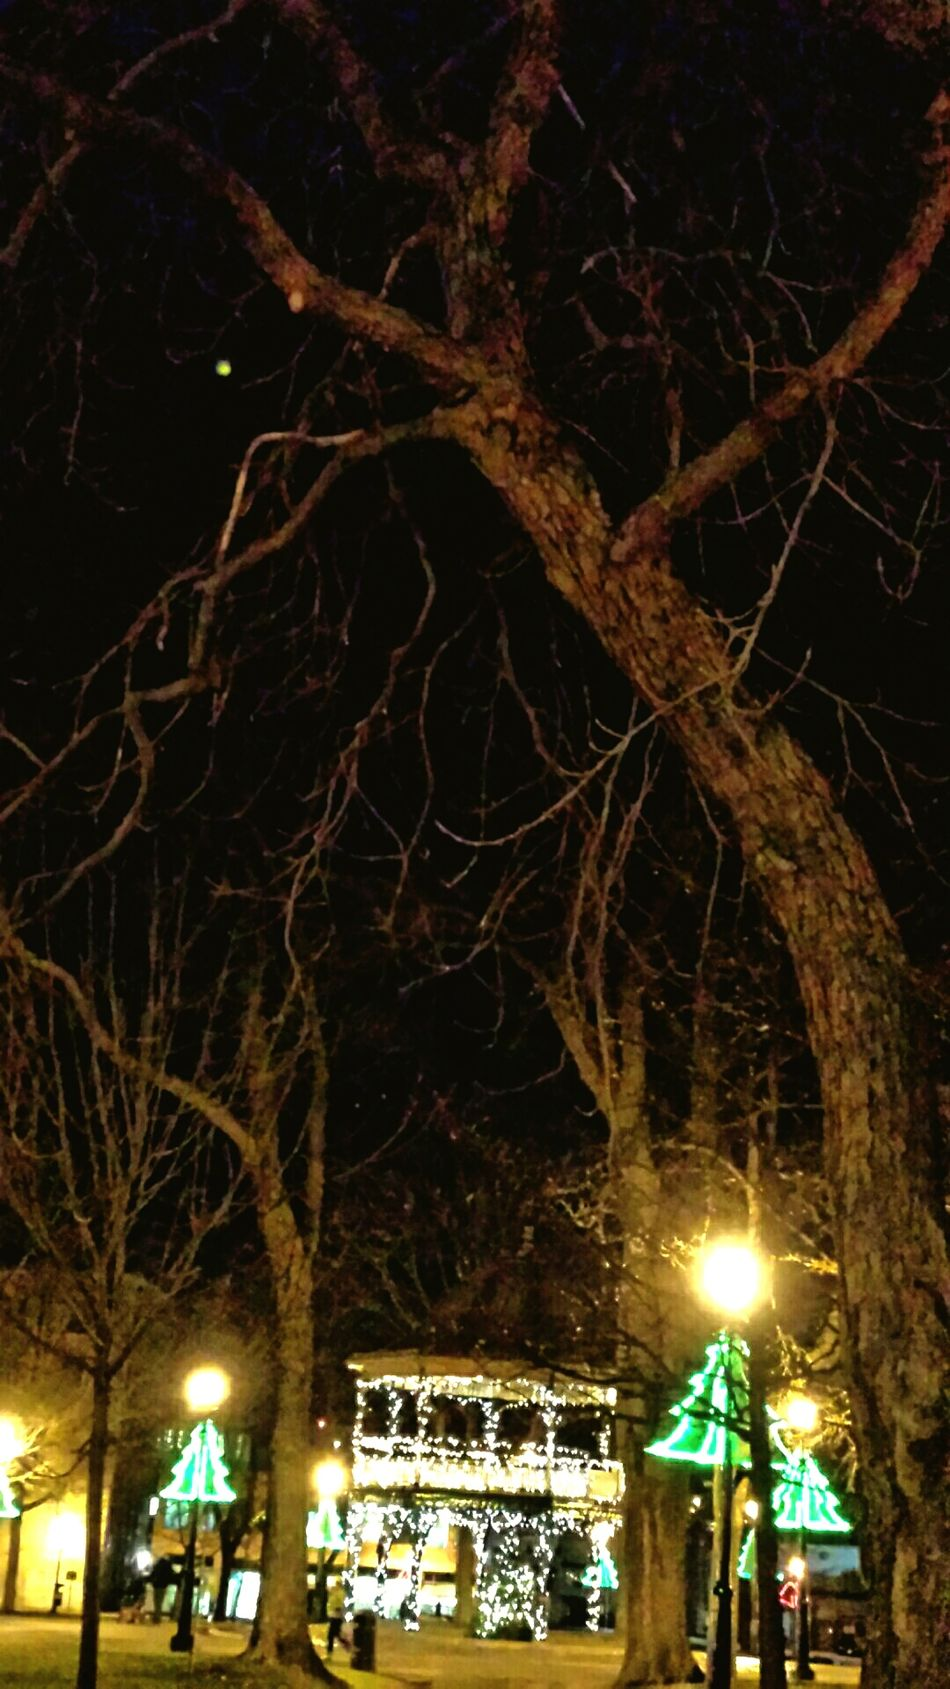 Check This Out ... the juxtaposition of haunting trees falling around the celebratory innocence of Christmas lights in the bandstand.